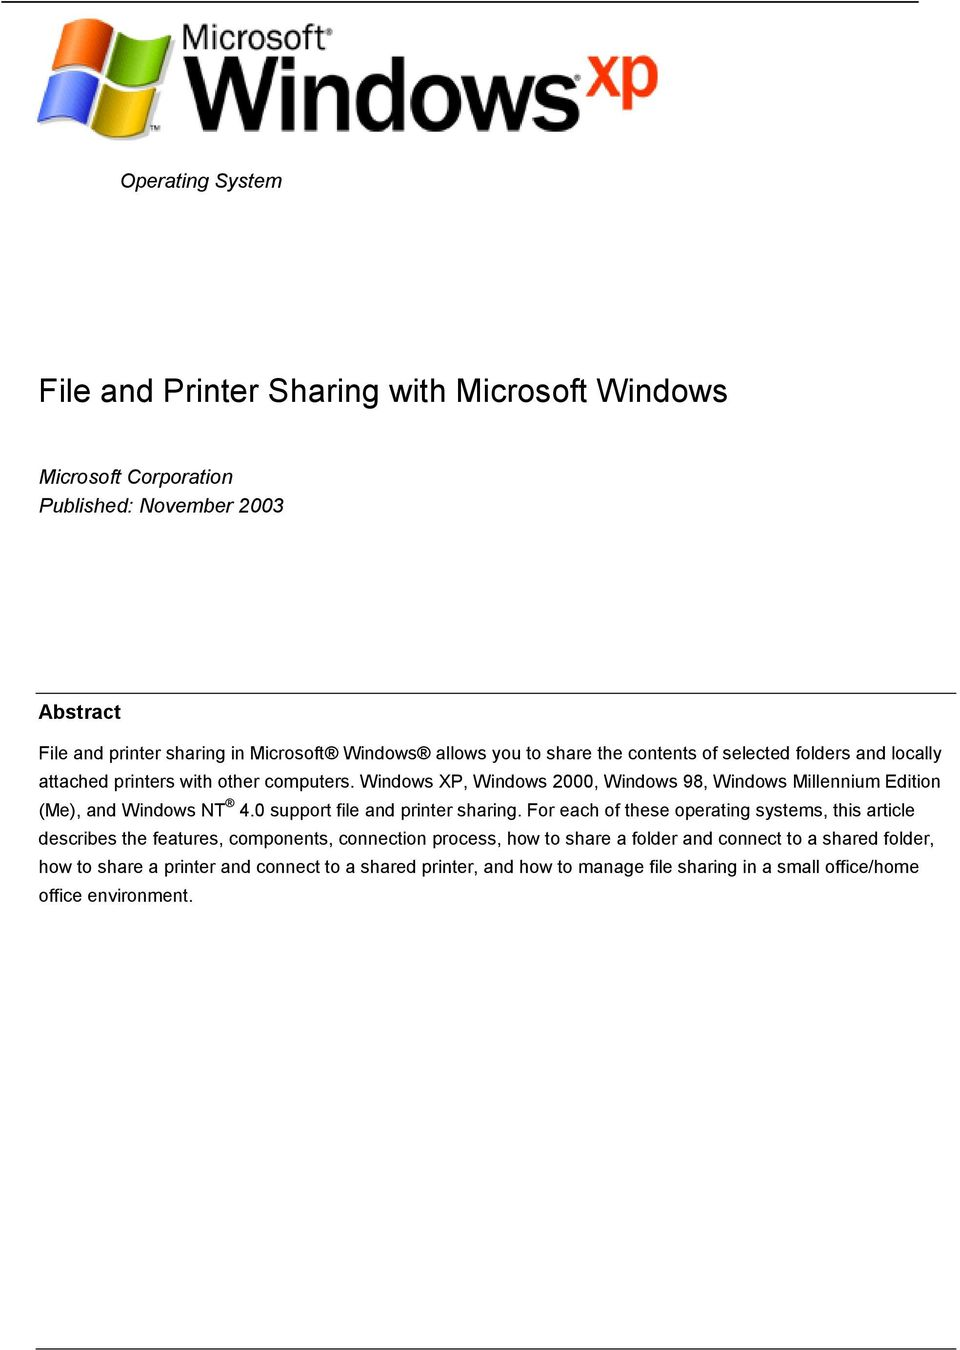 Windows XP, Windows 2000, Windows 98, Windows Millennium Edition (Me), and Windows NT 4.0 support file and printer sharing.